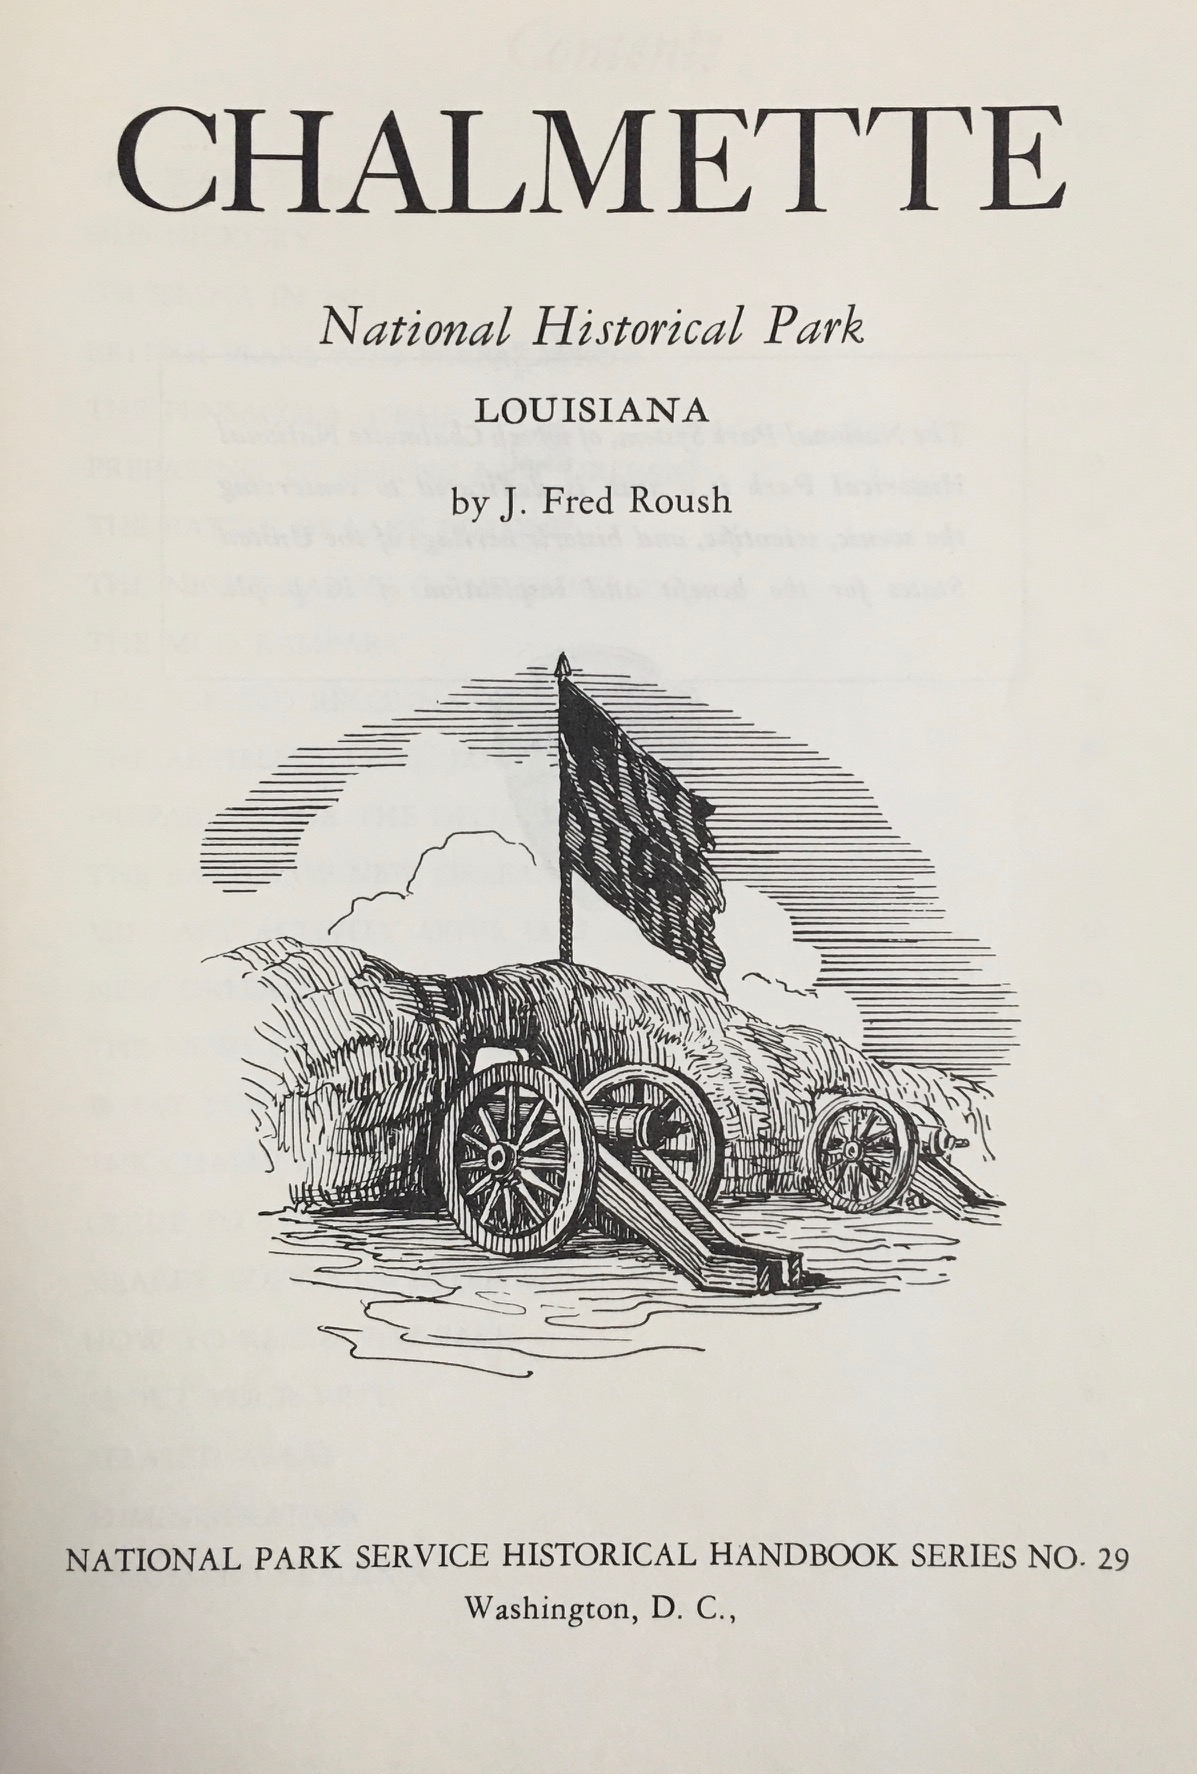 Image for Chalmette National Historical Park, Louisiana (National Park Service Historical Handbook Series No. 29)